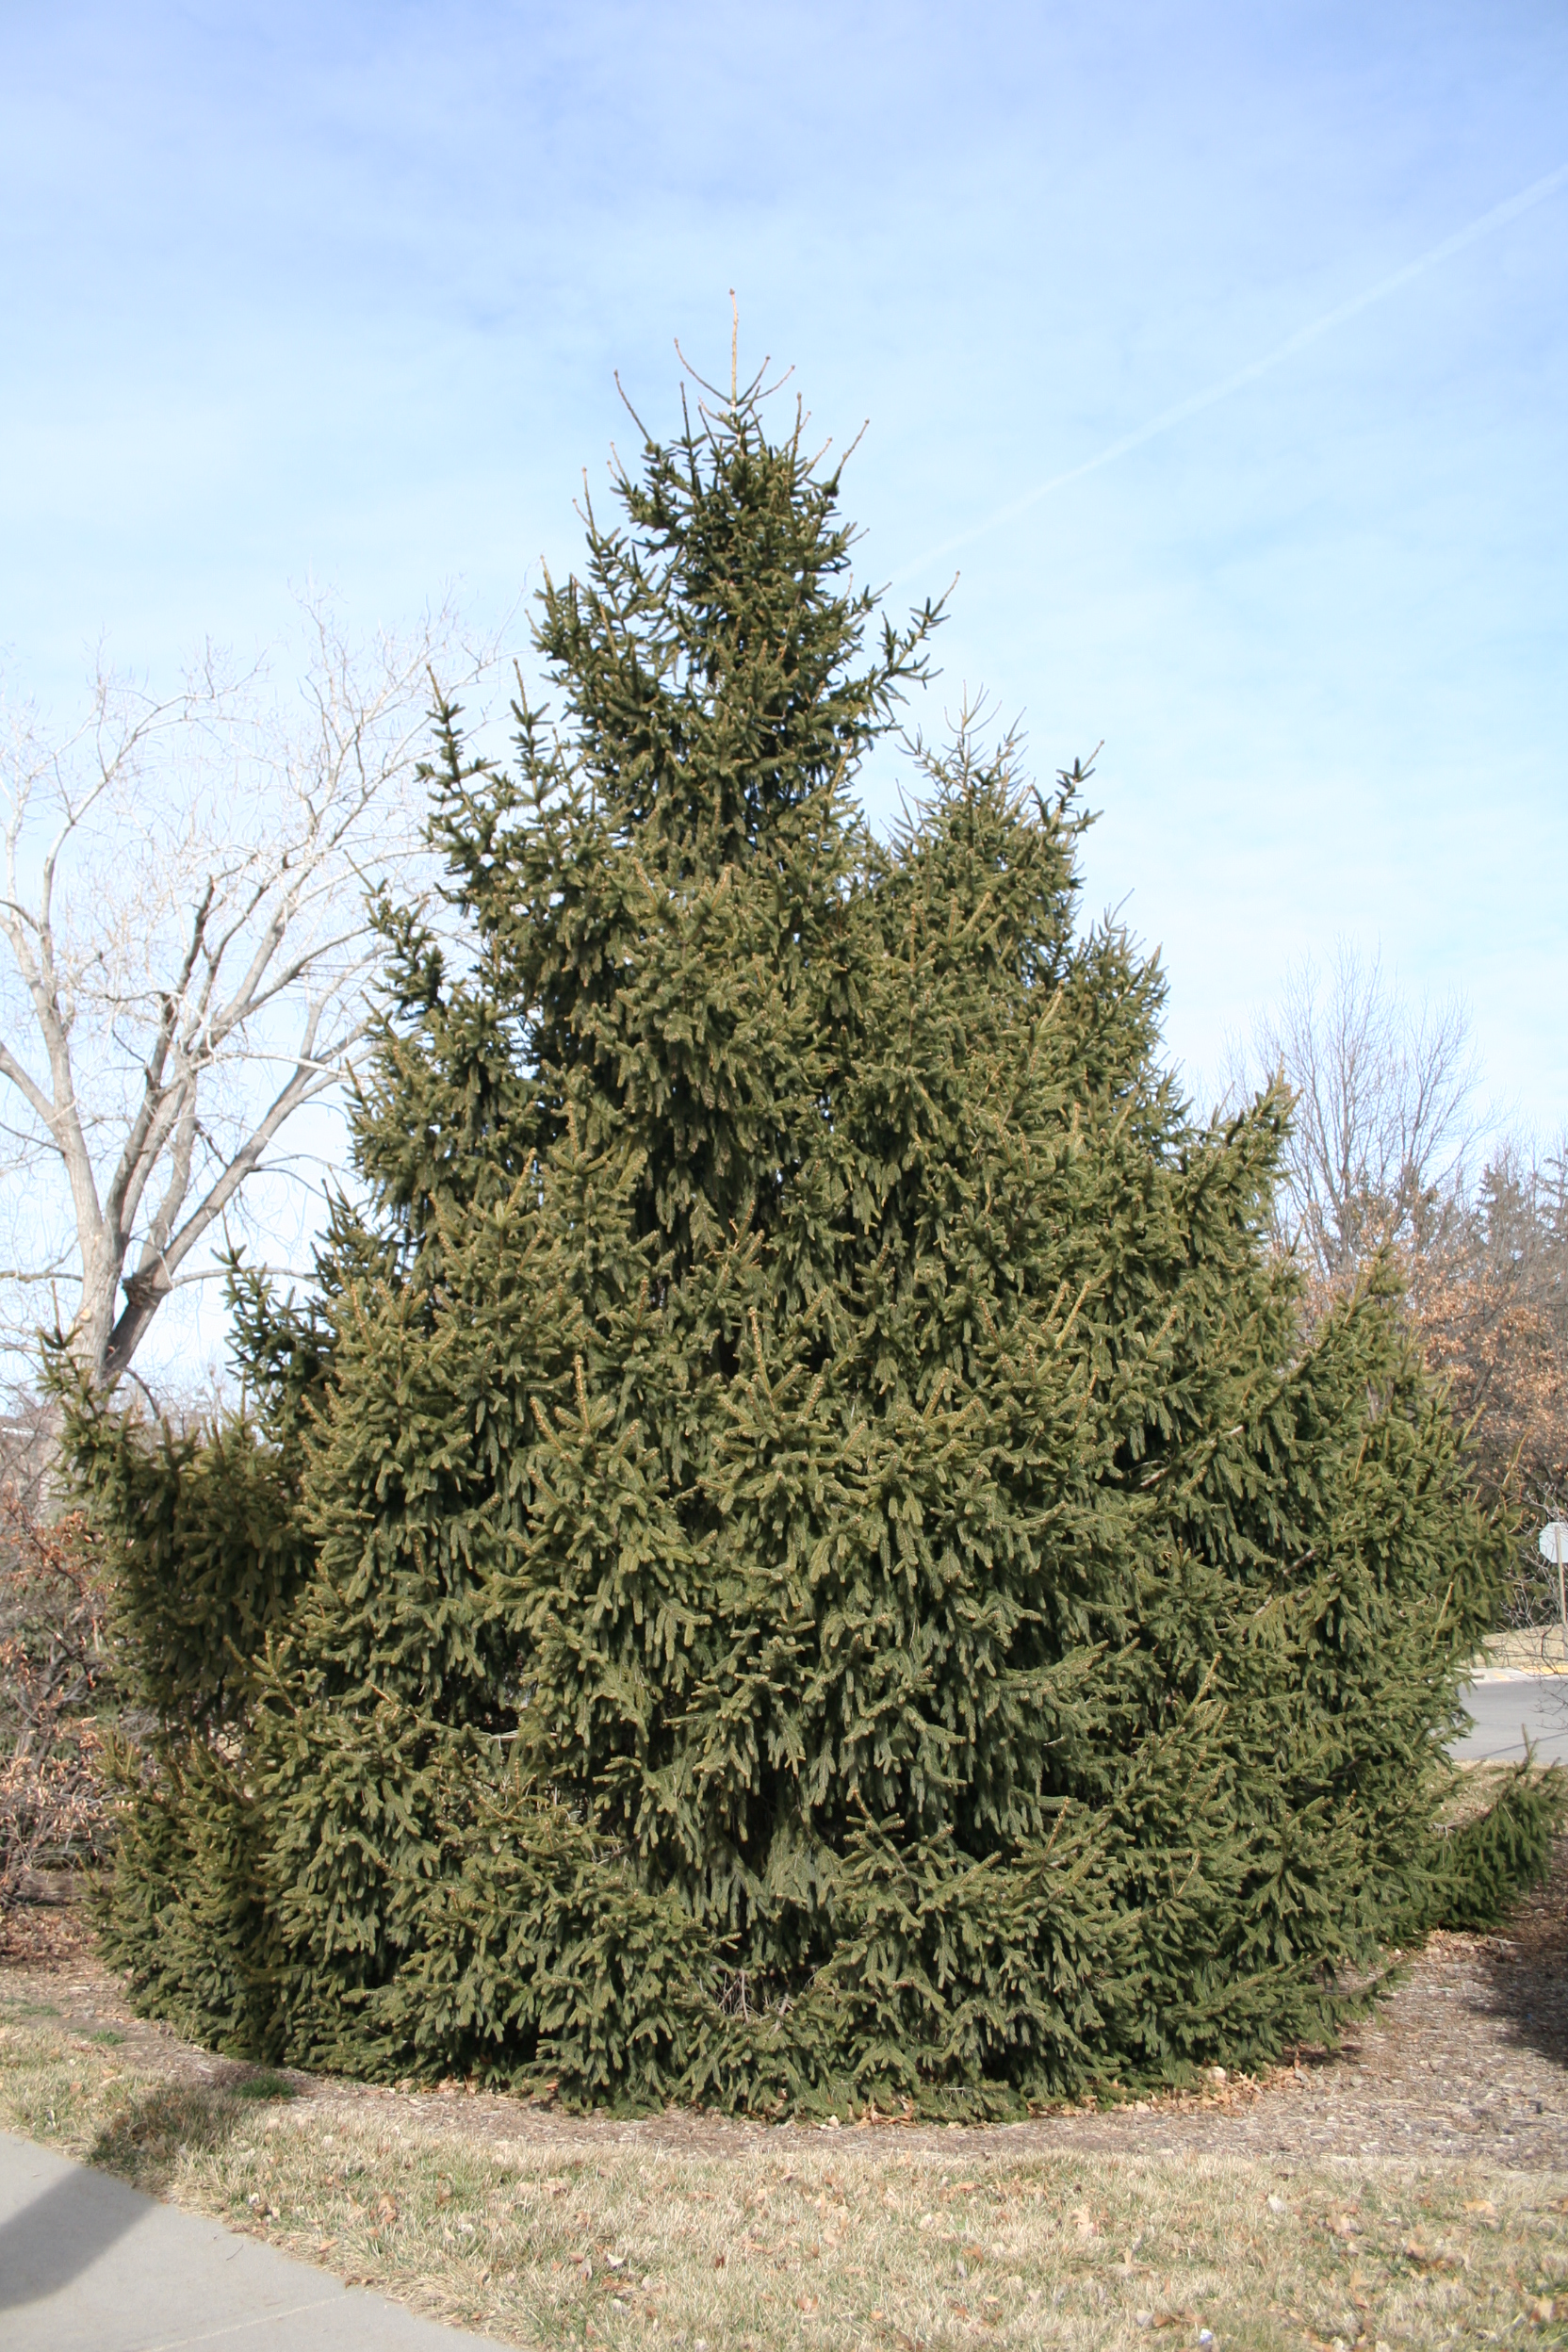 Norway spruce, Picea abies